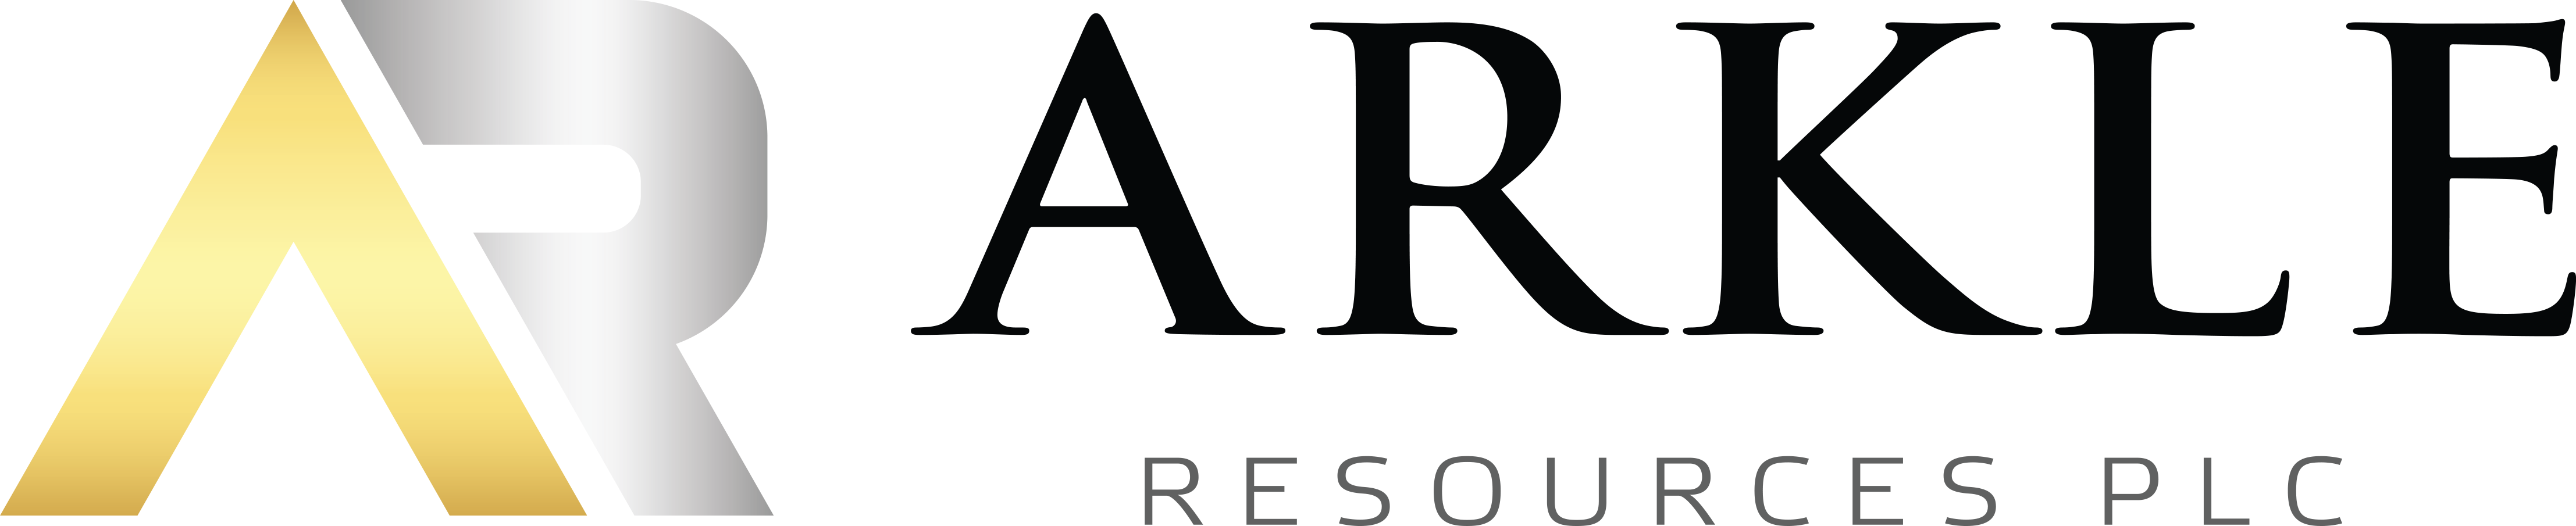 Arkle Resources PLC (LON: ARK)